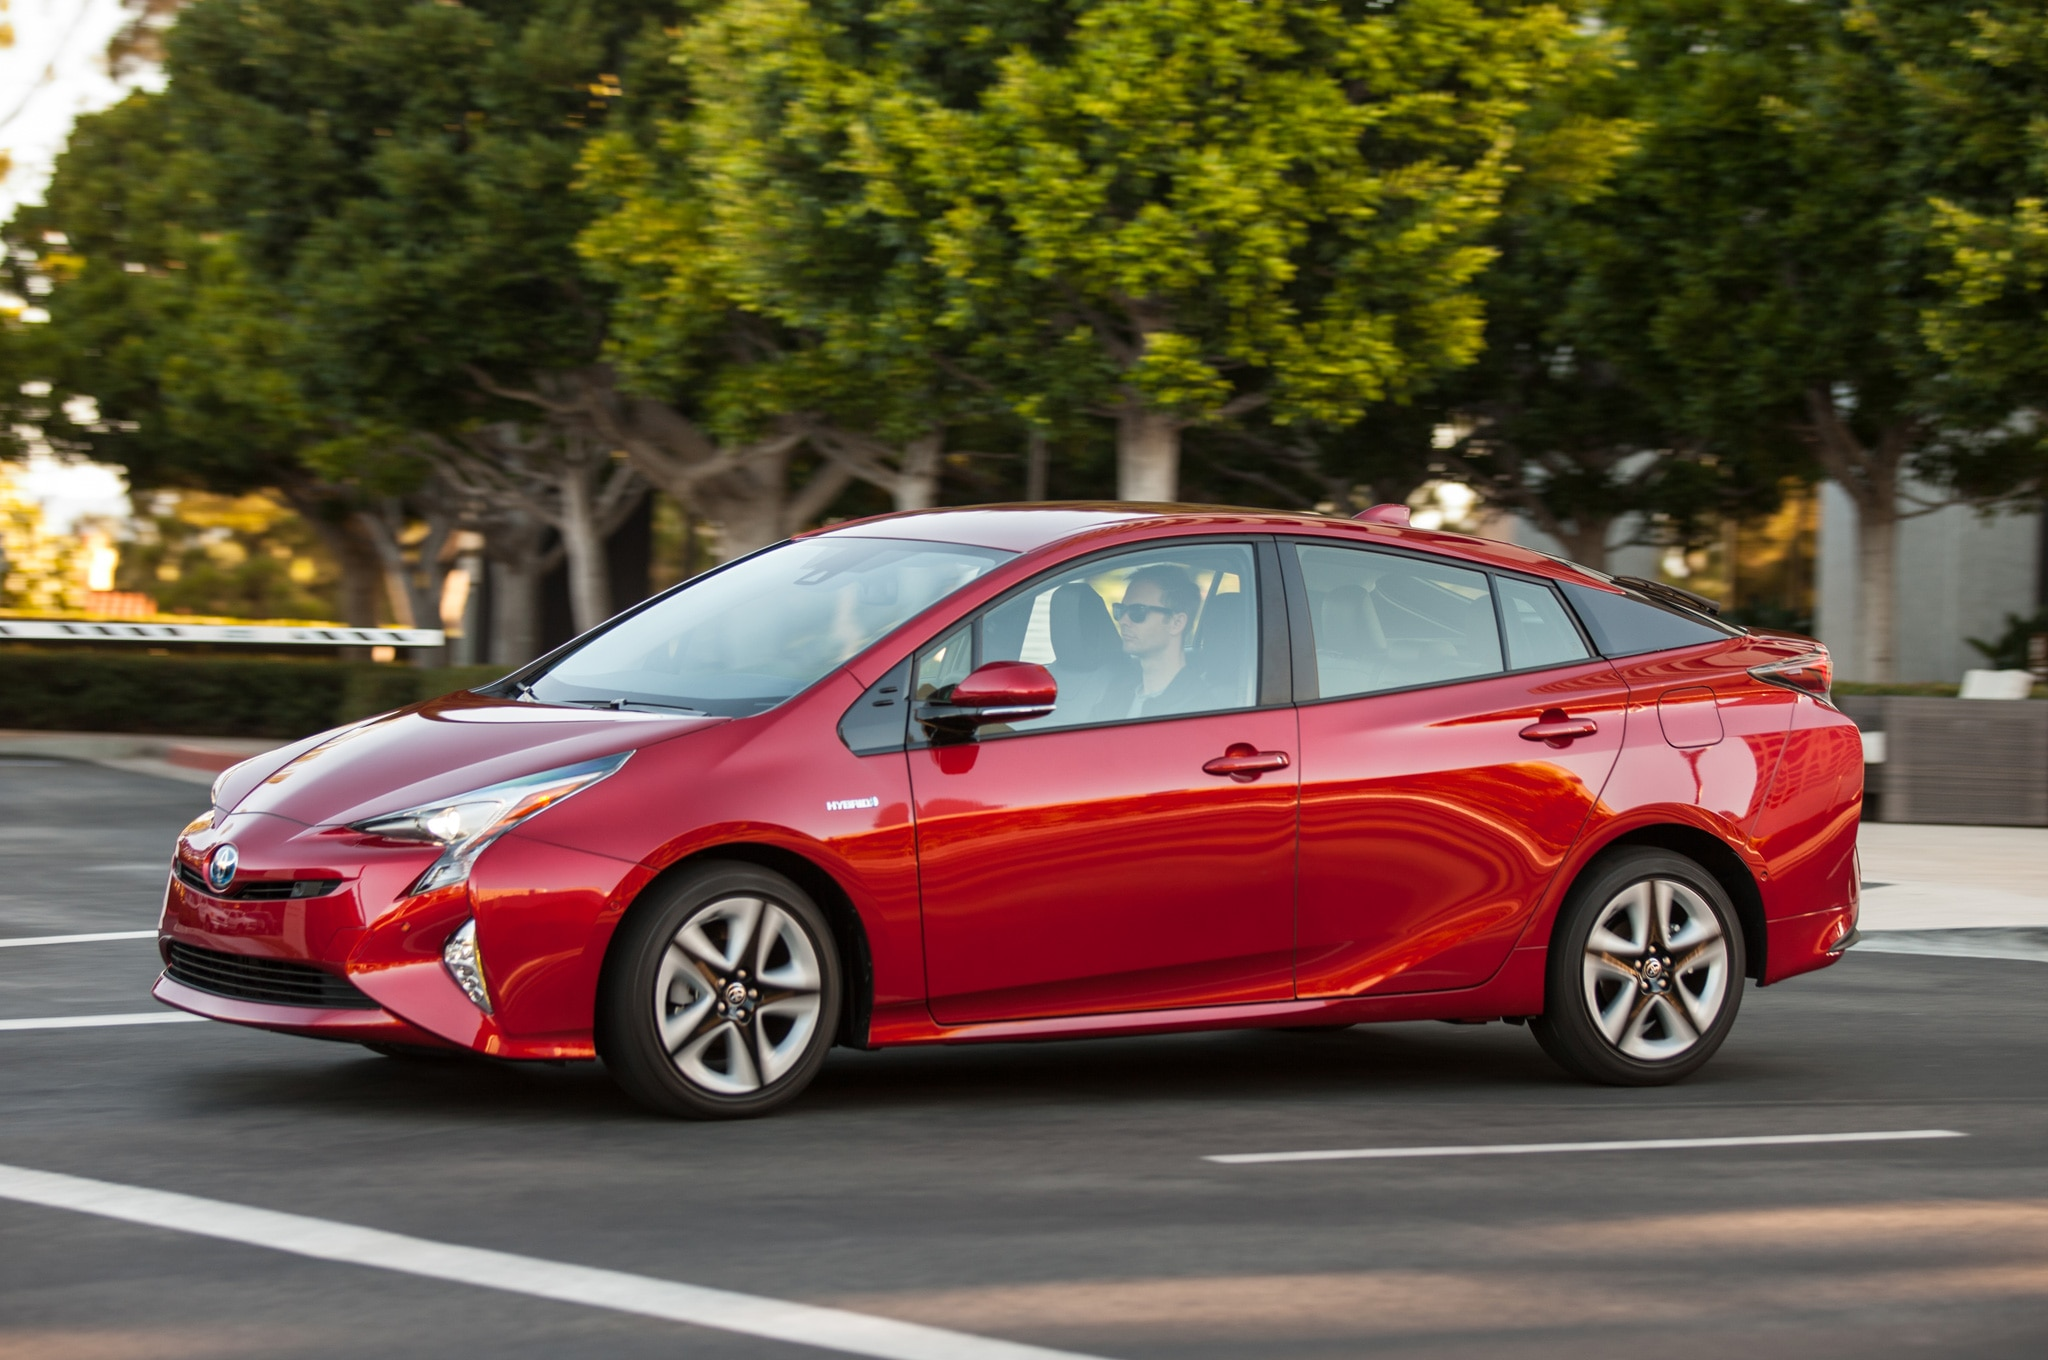 2016 toyota prius named iihs top safety pick. Black Bedroom Furniture Sets. Home Design Ideas